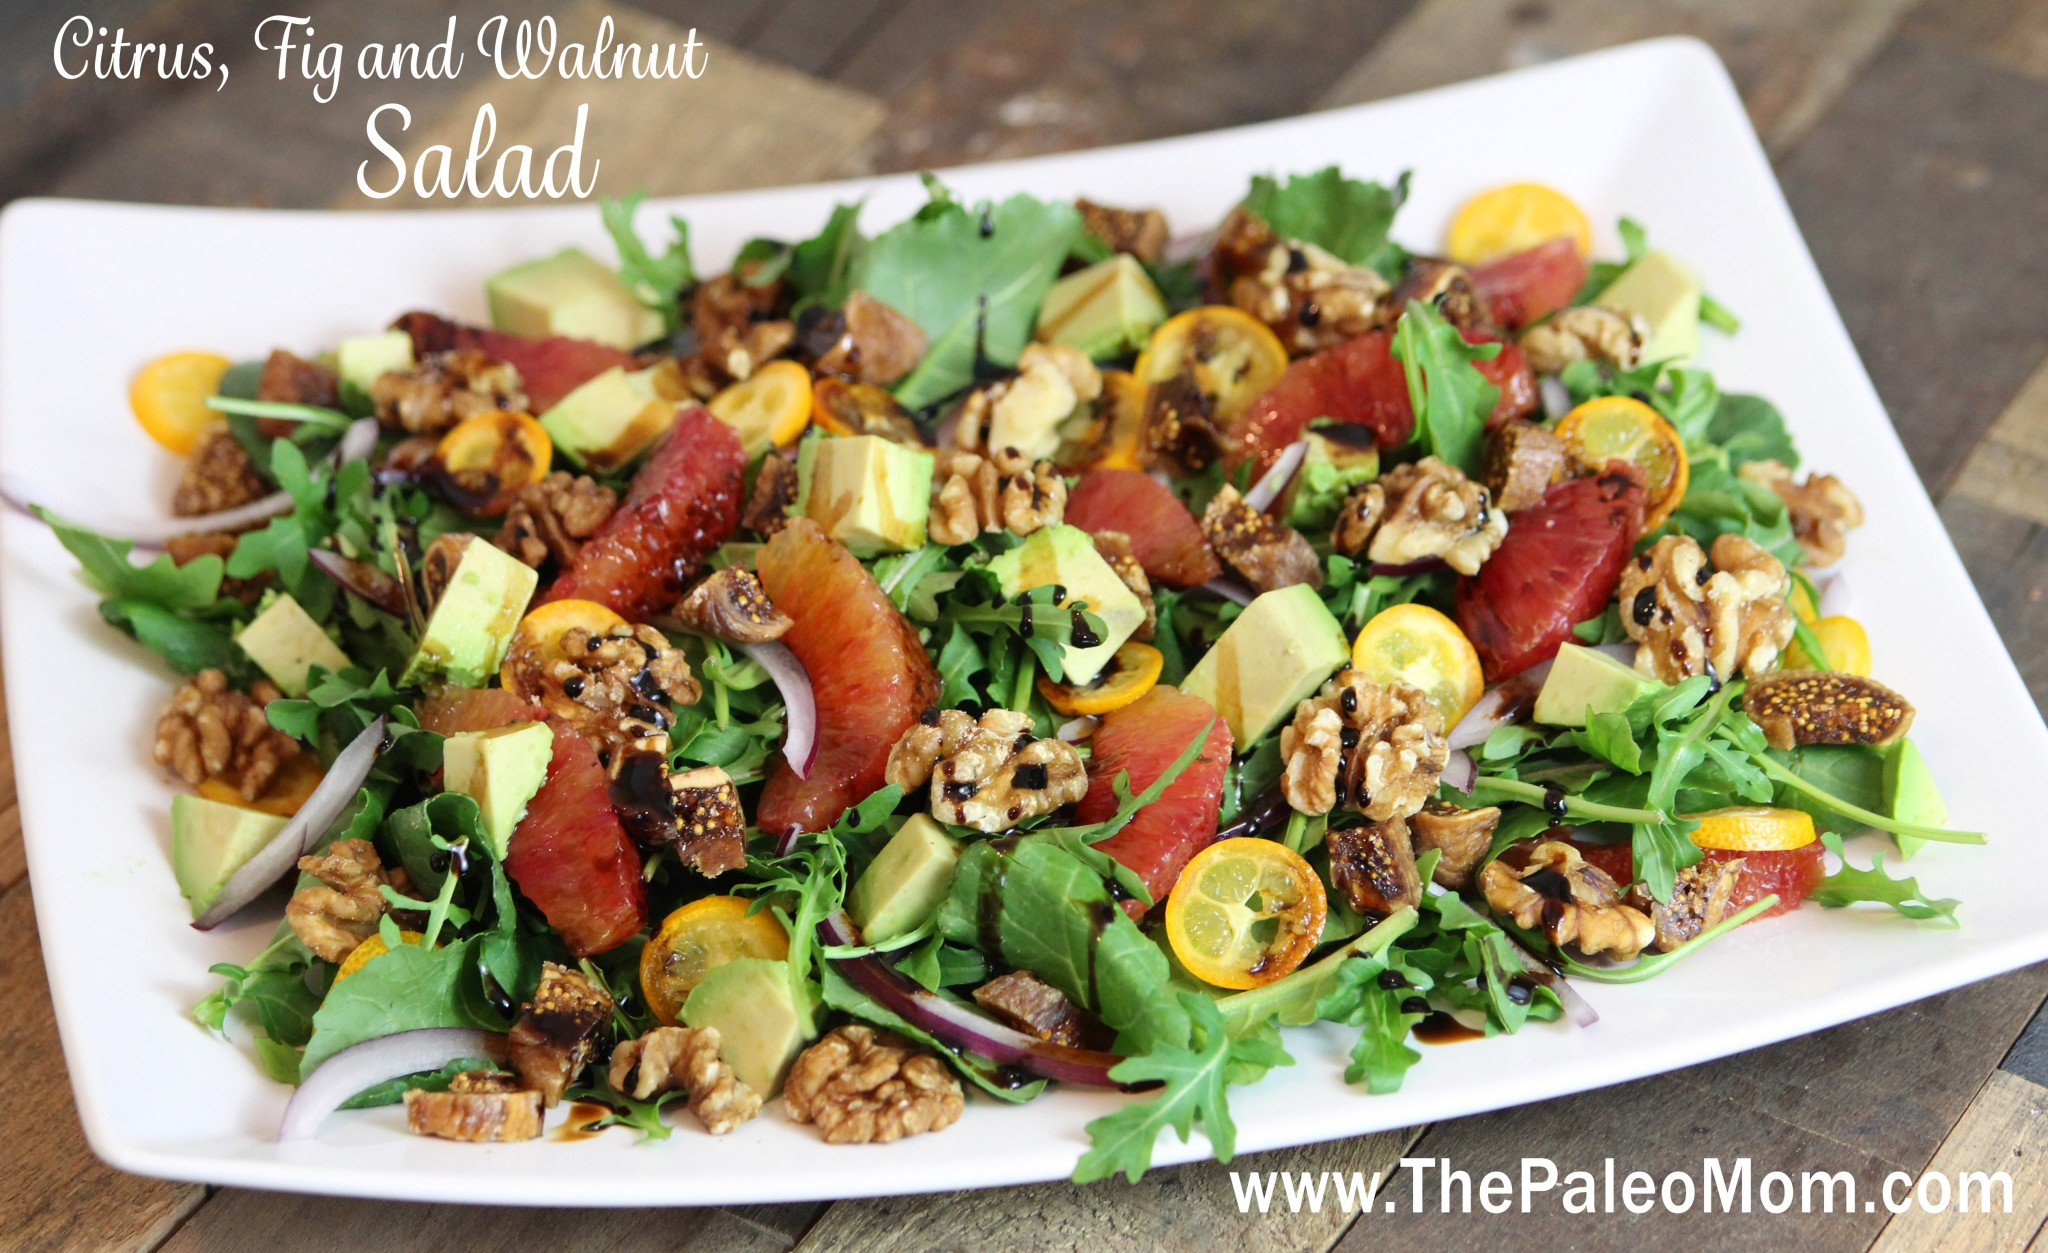 Citrus, Fig and Walnut Salad